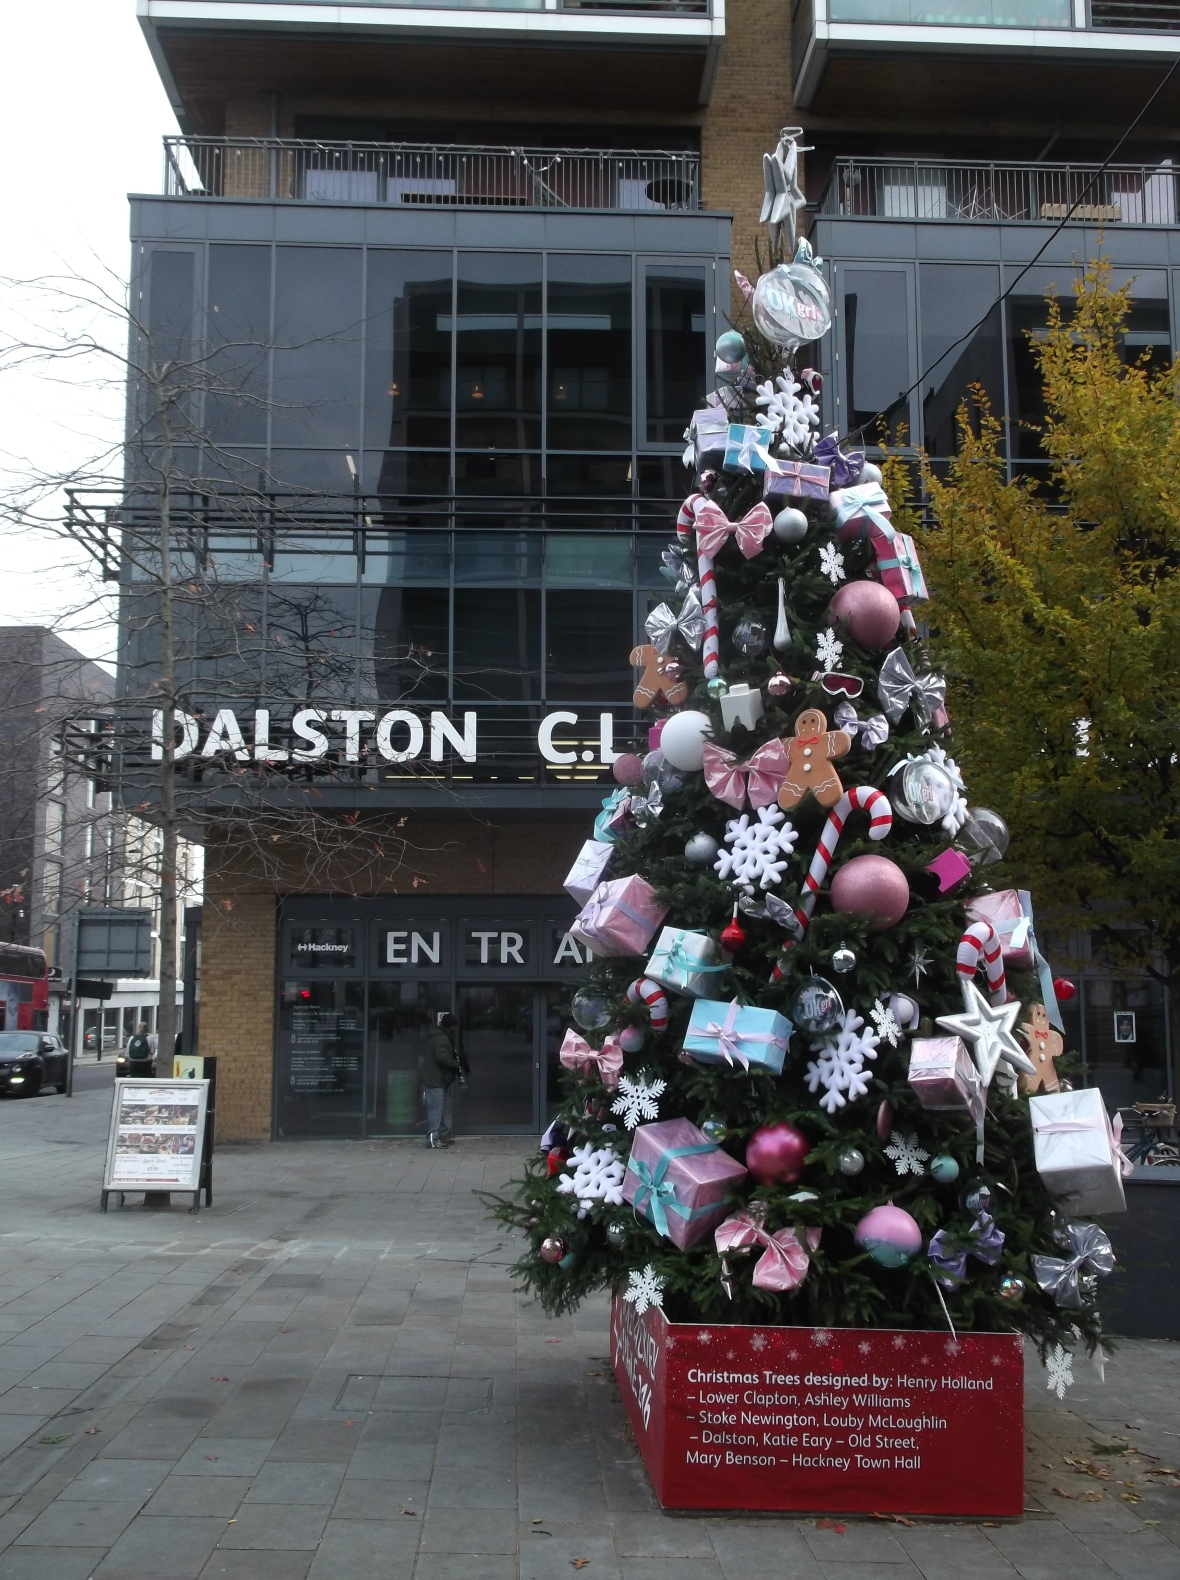 Only Hackney would have an array of Christmas trees decorated by fashion designers...